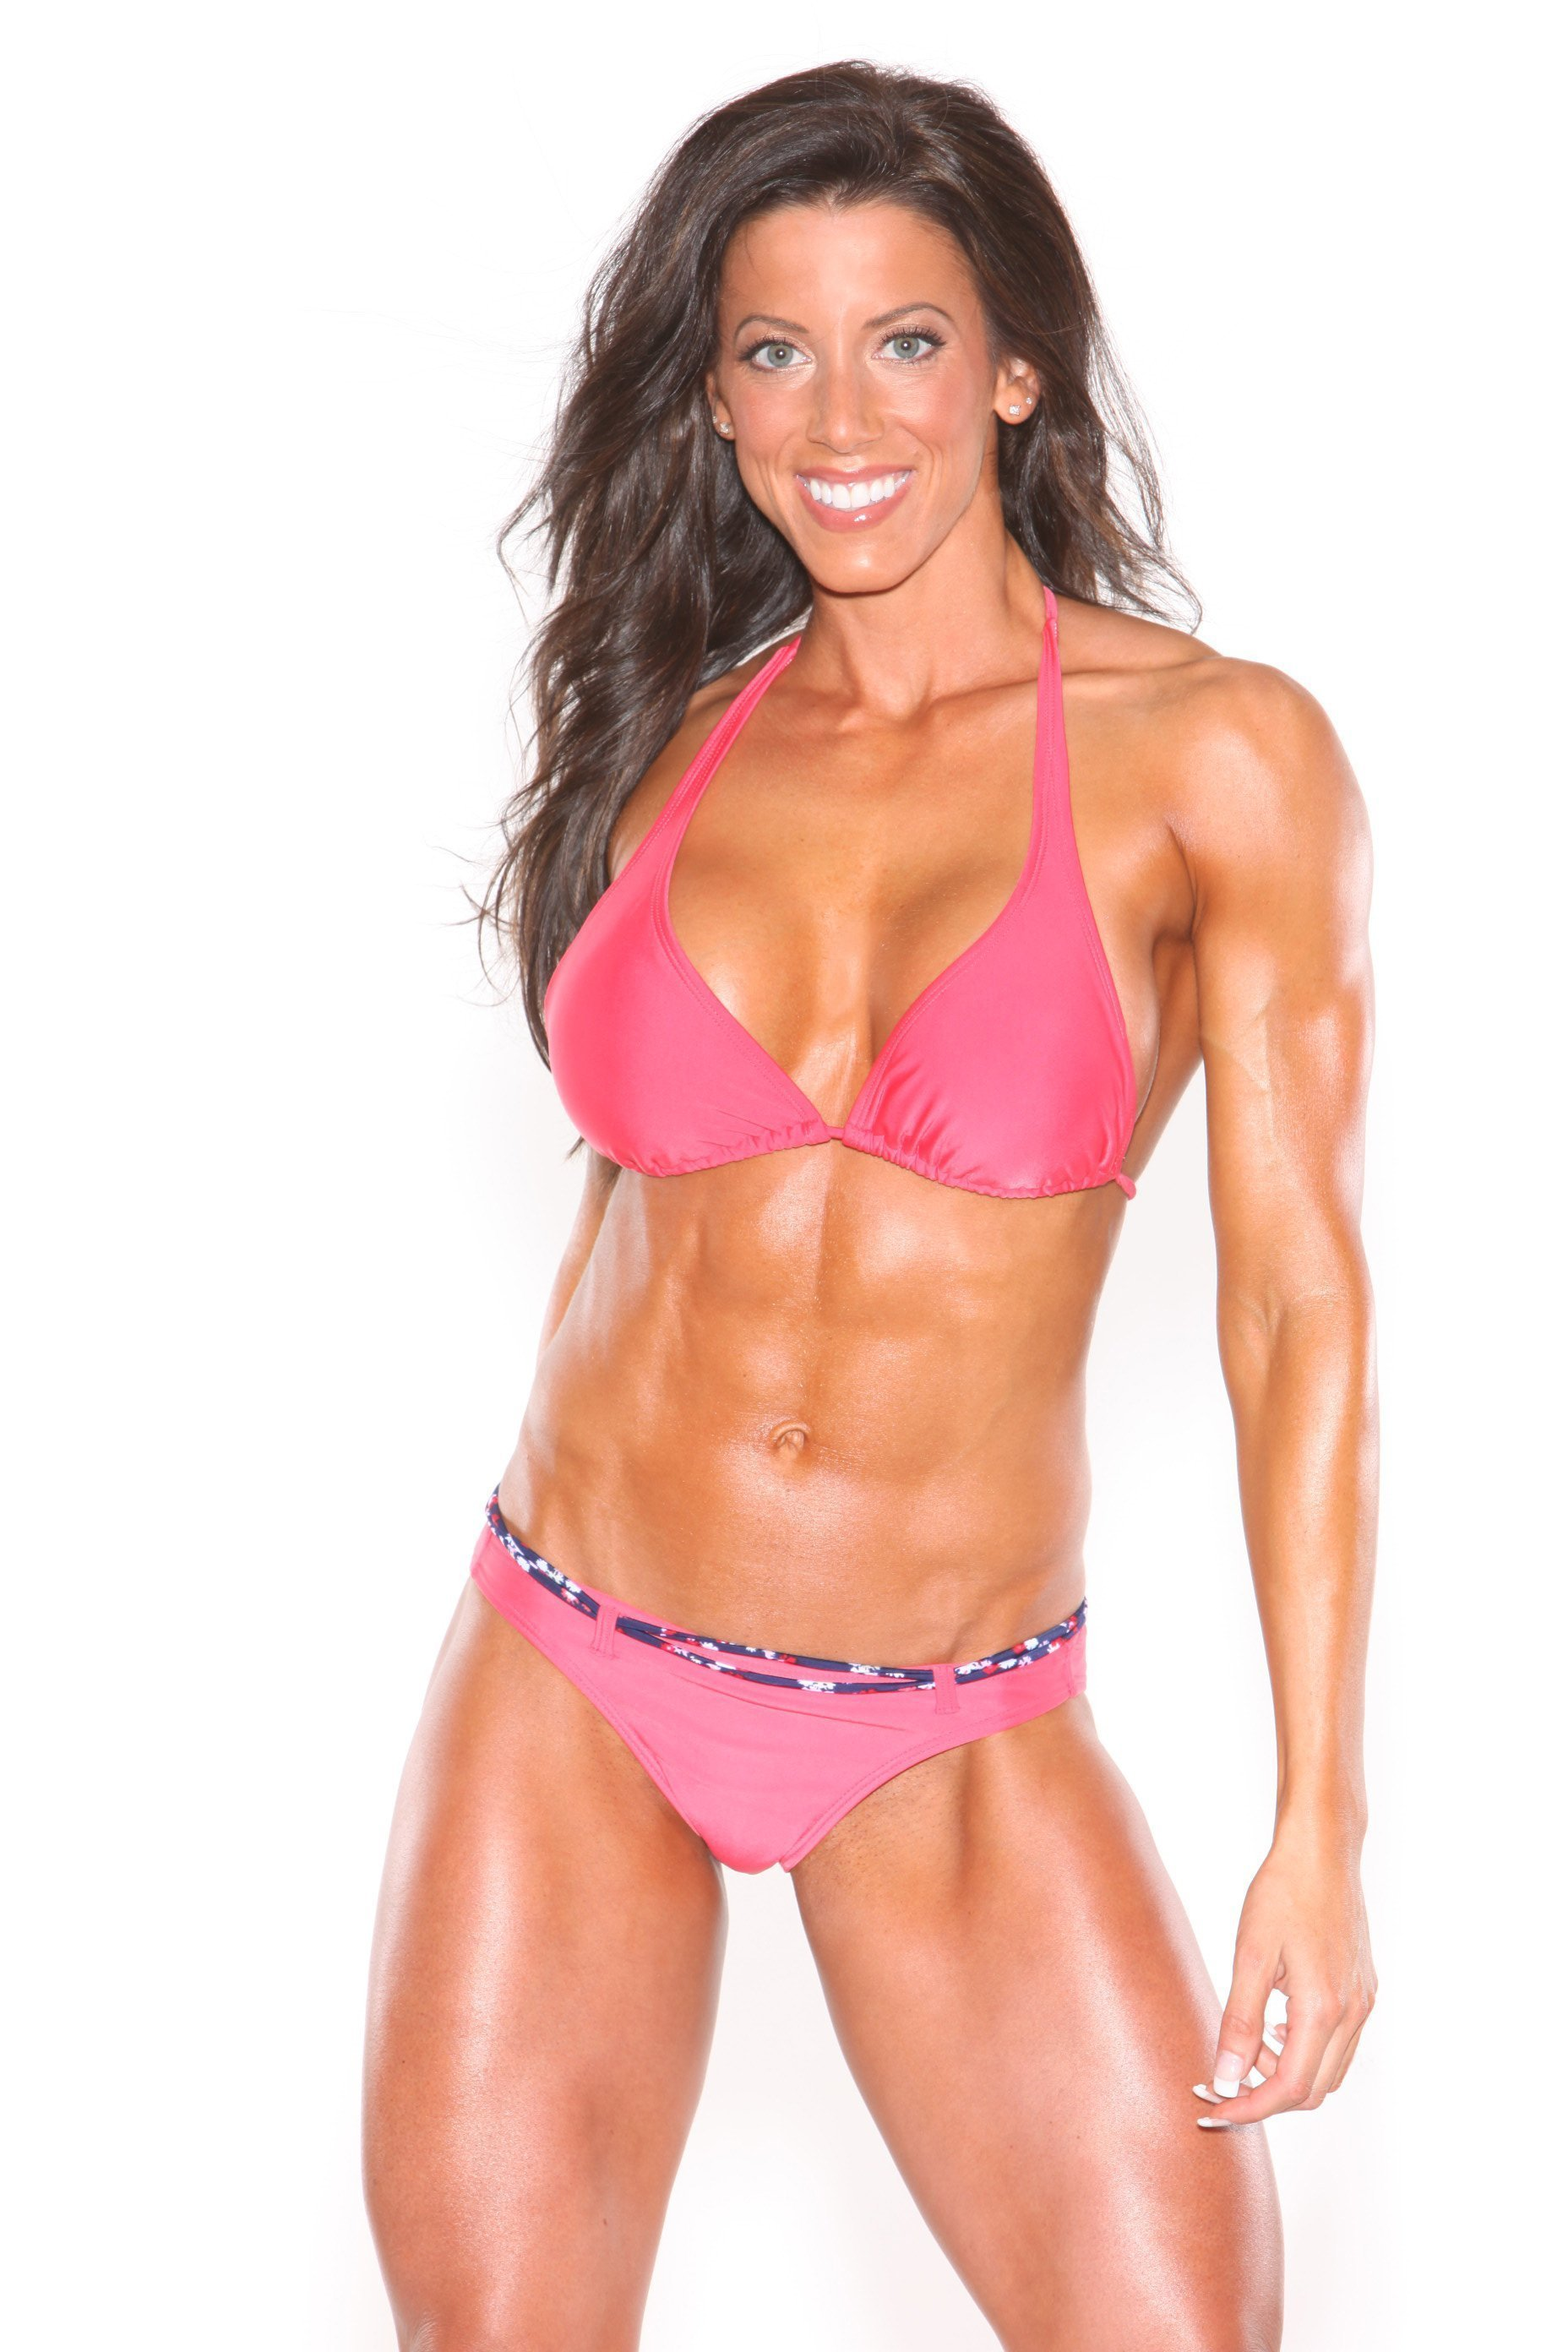 Contest Prep Coach and Top Professional Fitness Model Julie Germaine